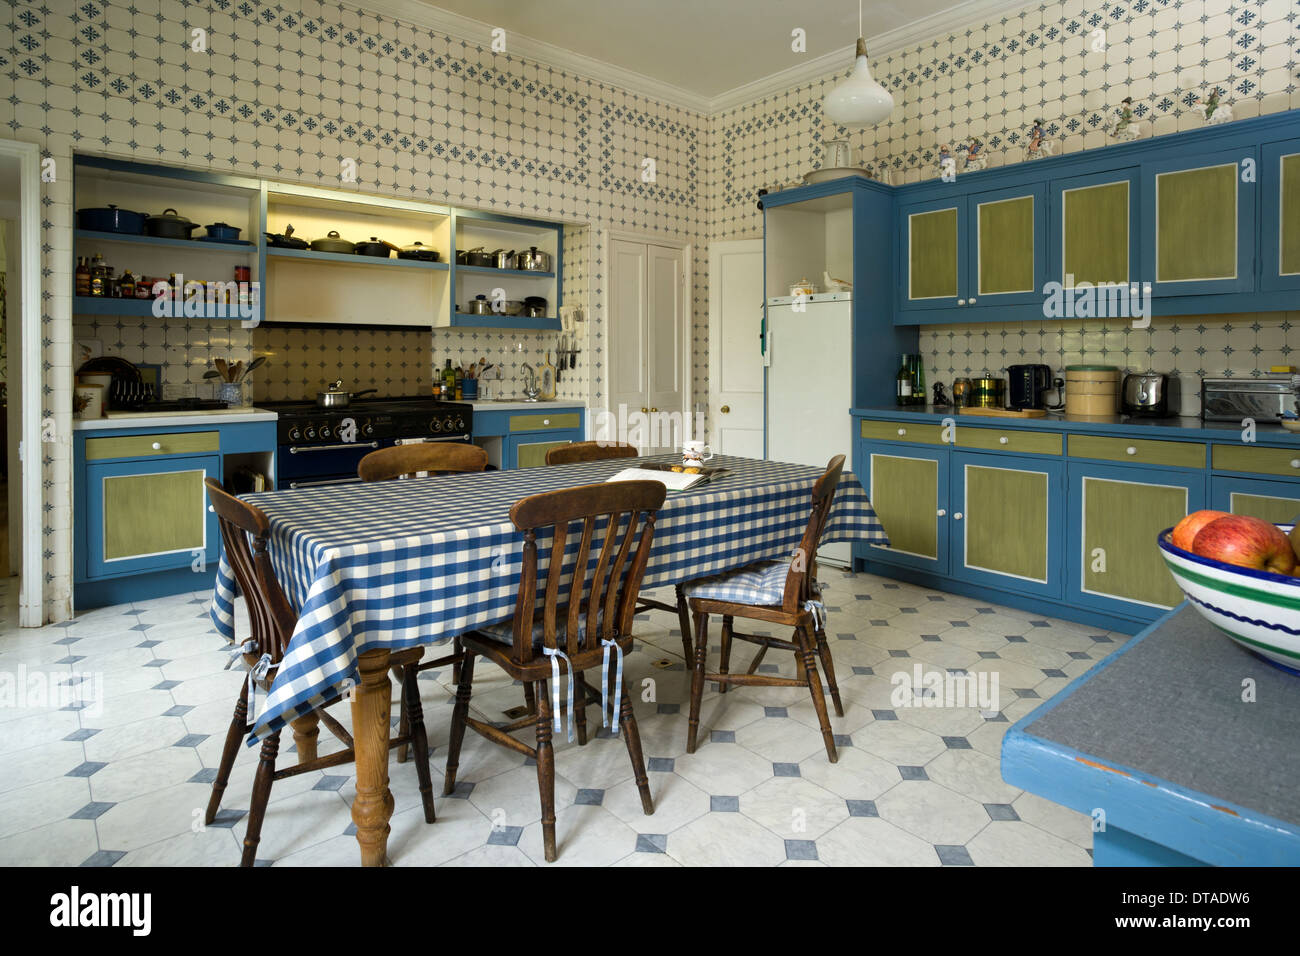 Lustige Bilder Küchenarbeit Unusual Kitchen Stockfotos Unusual Kitchen Bilder Alamy